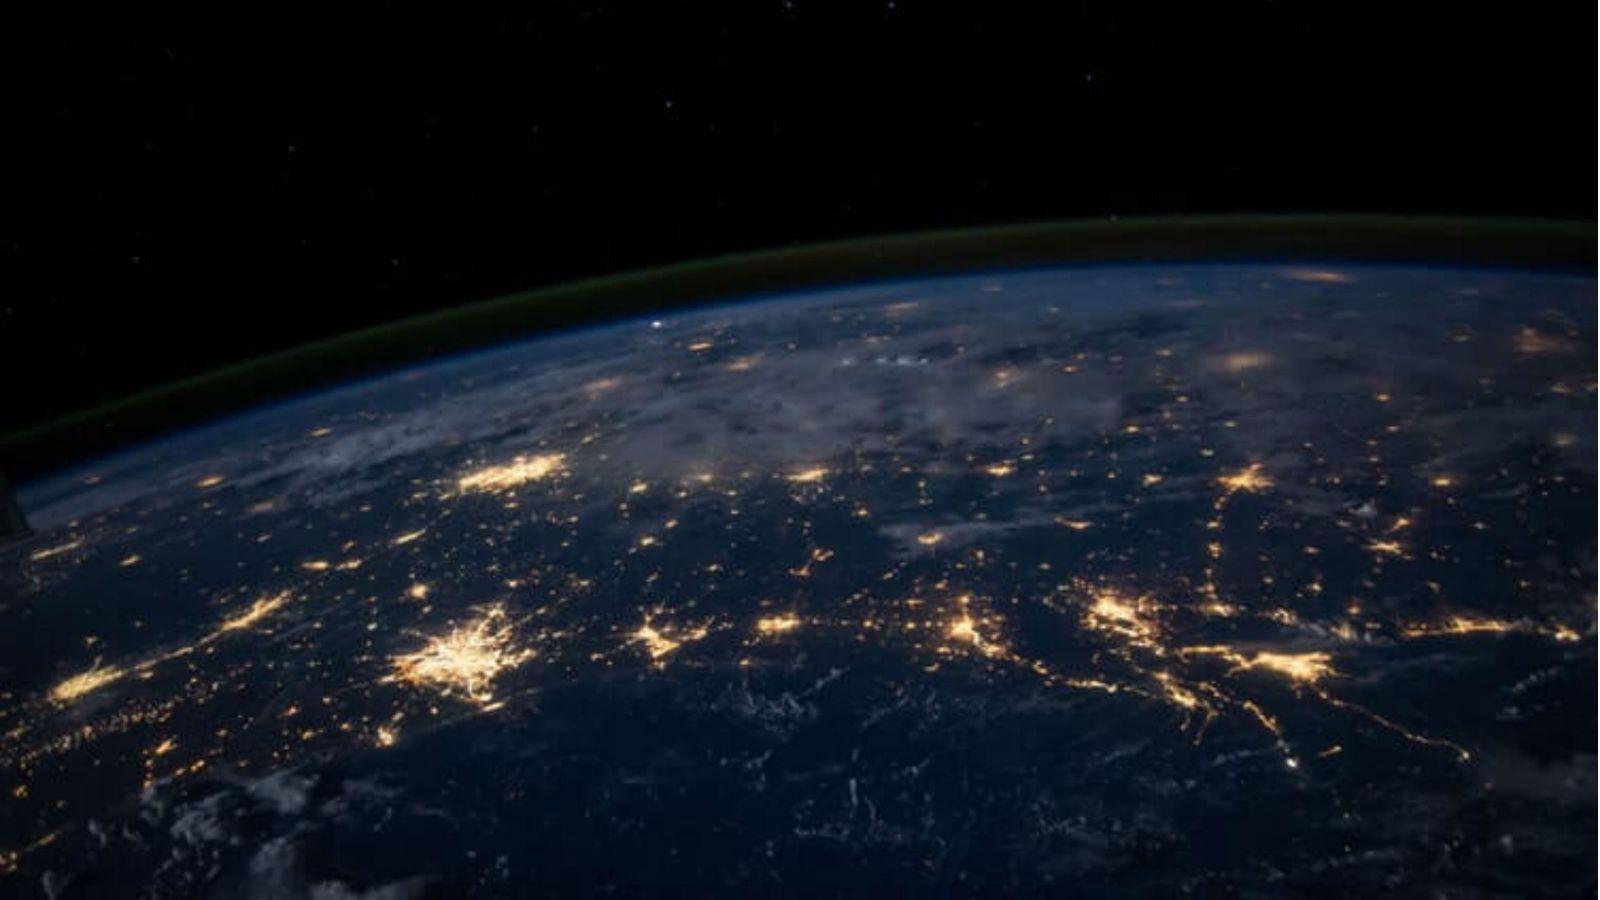 Earth from space at night.